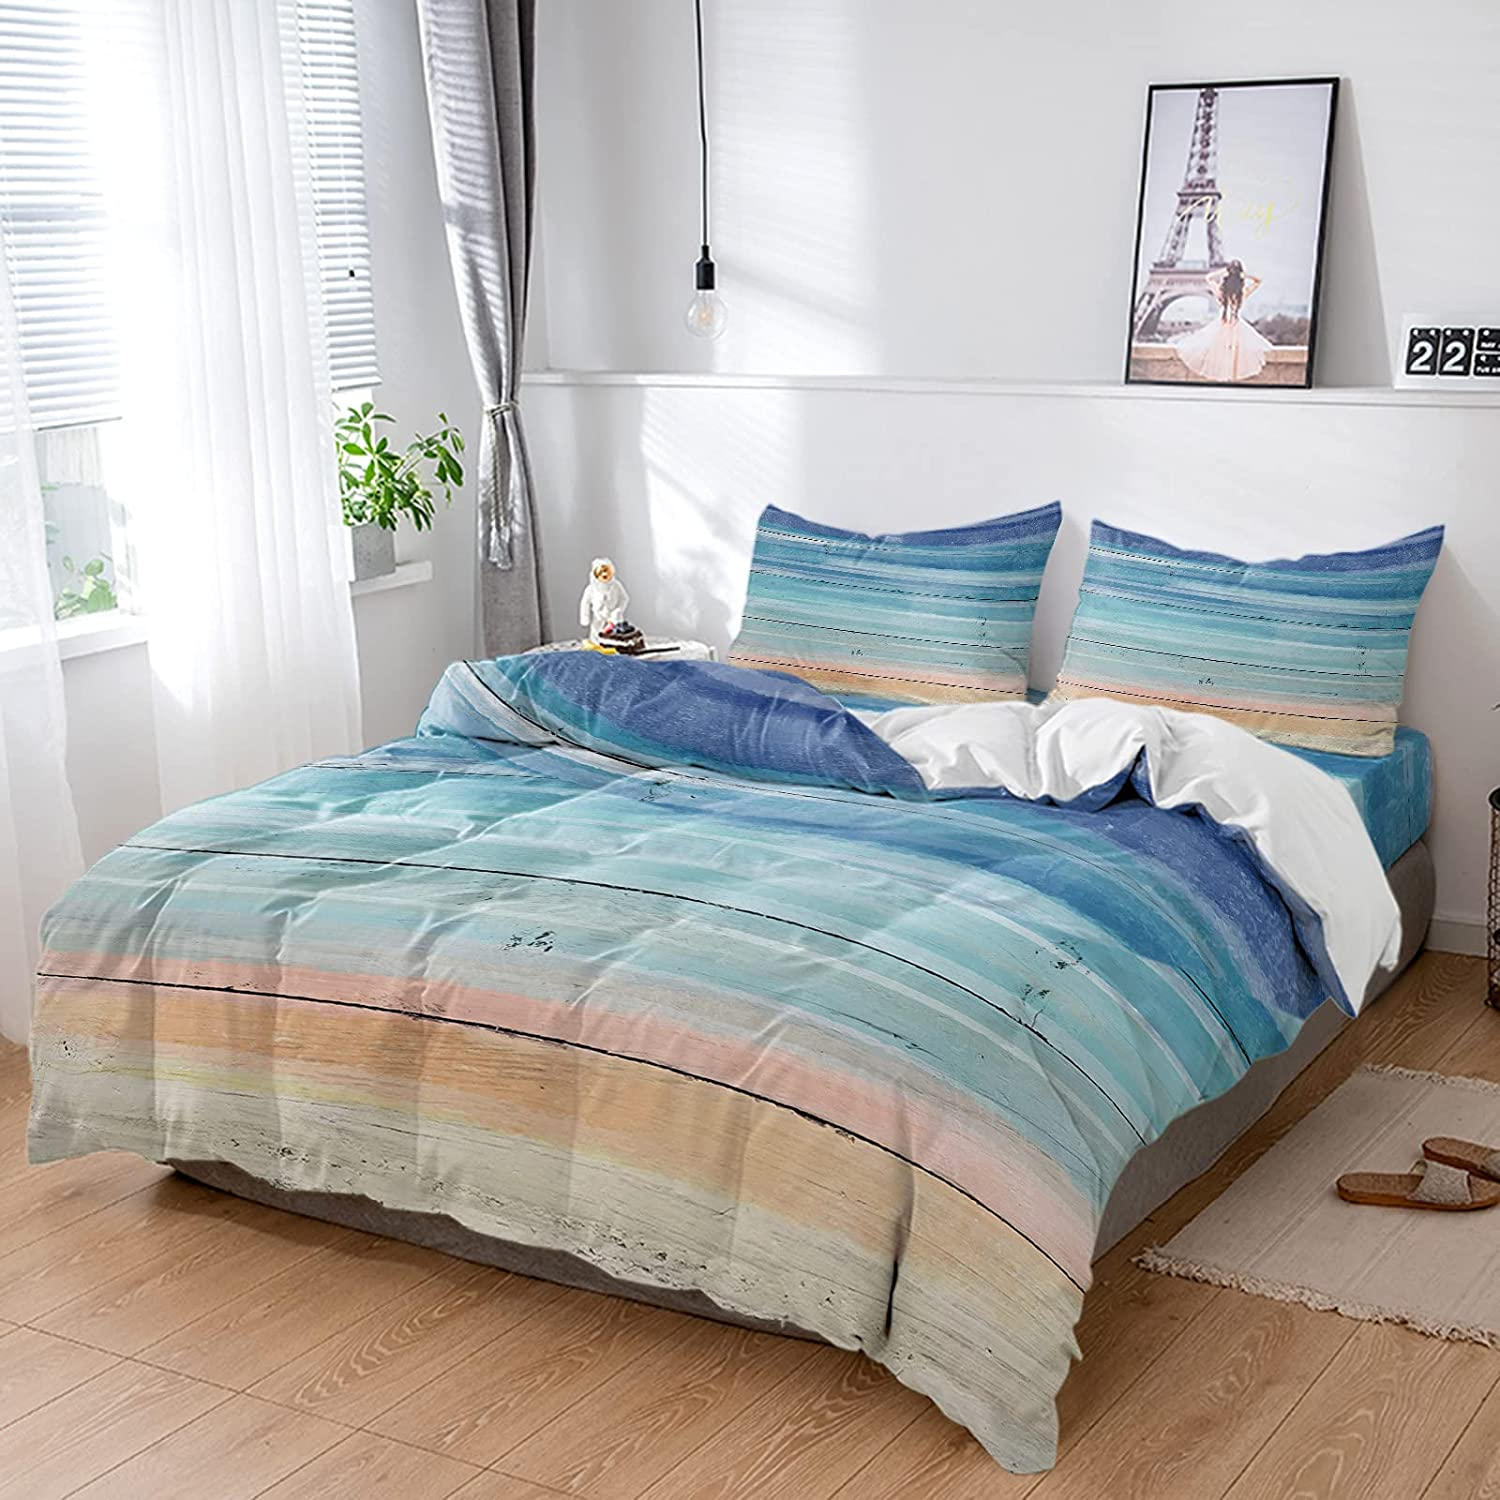 Twin 4 Pieces Duvet Cover Set Grain Special price for a limited SALENEW very popular! time Style Country Microfi Wooden